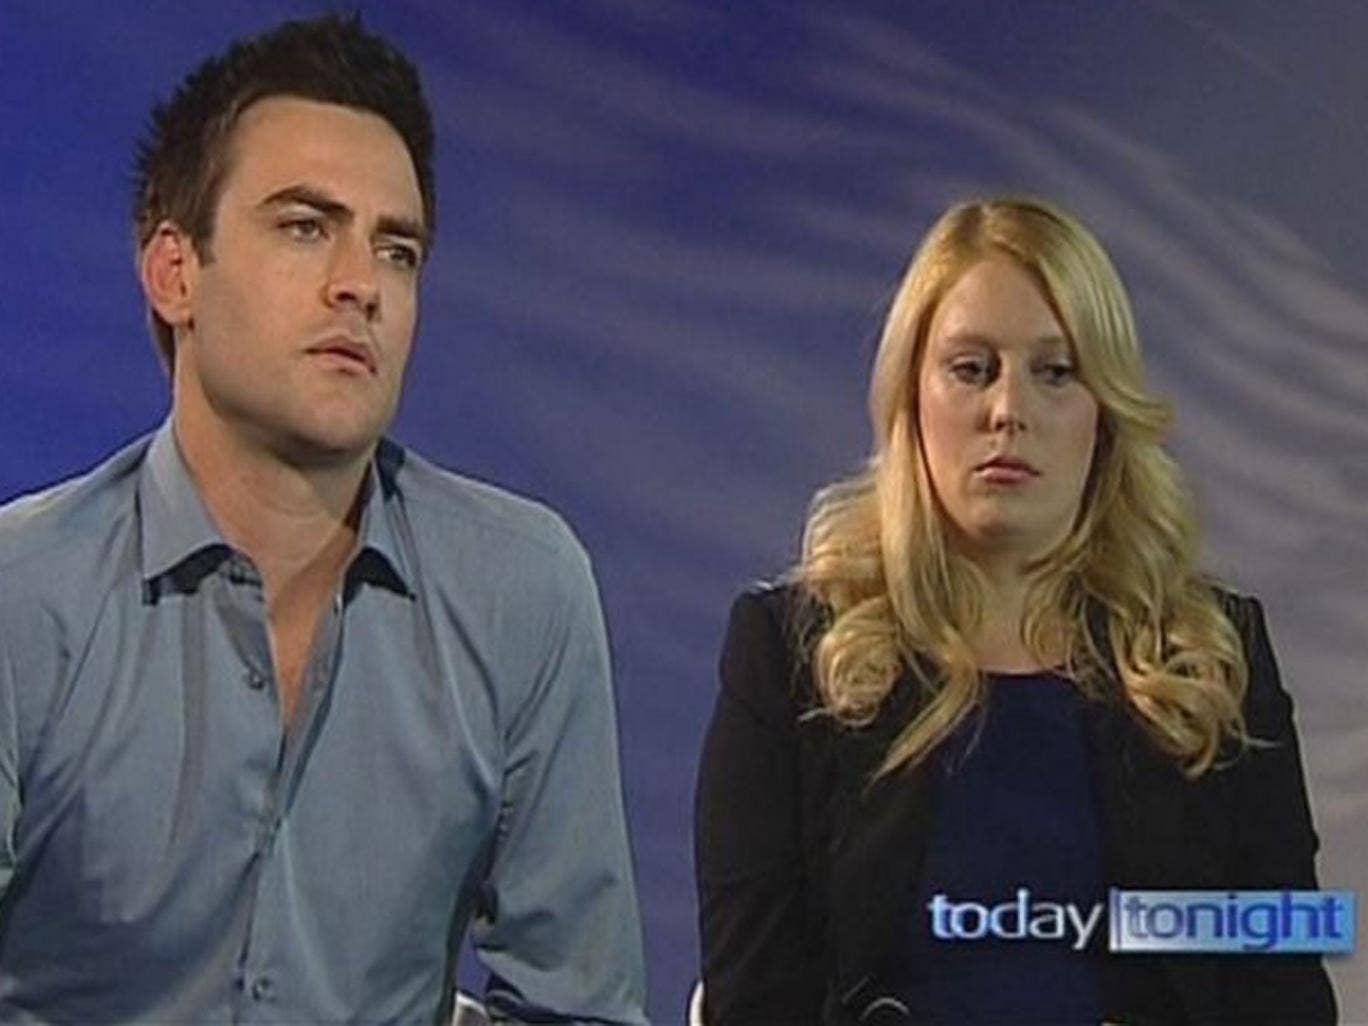 Sydney-based 2DayFM radio presenters Michael Christian (L) and Mel Greig speak during an interview with Seven Network's current affairs program Today Tonight